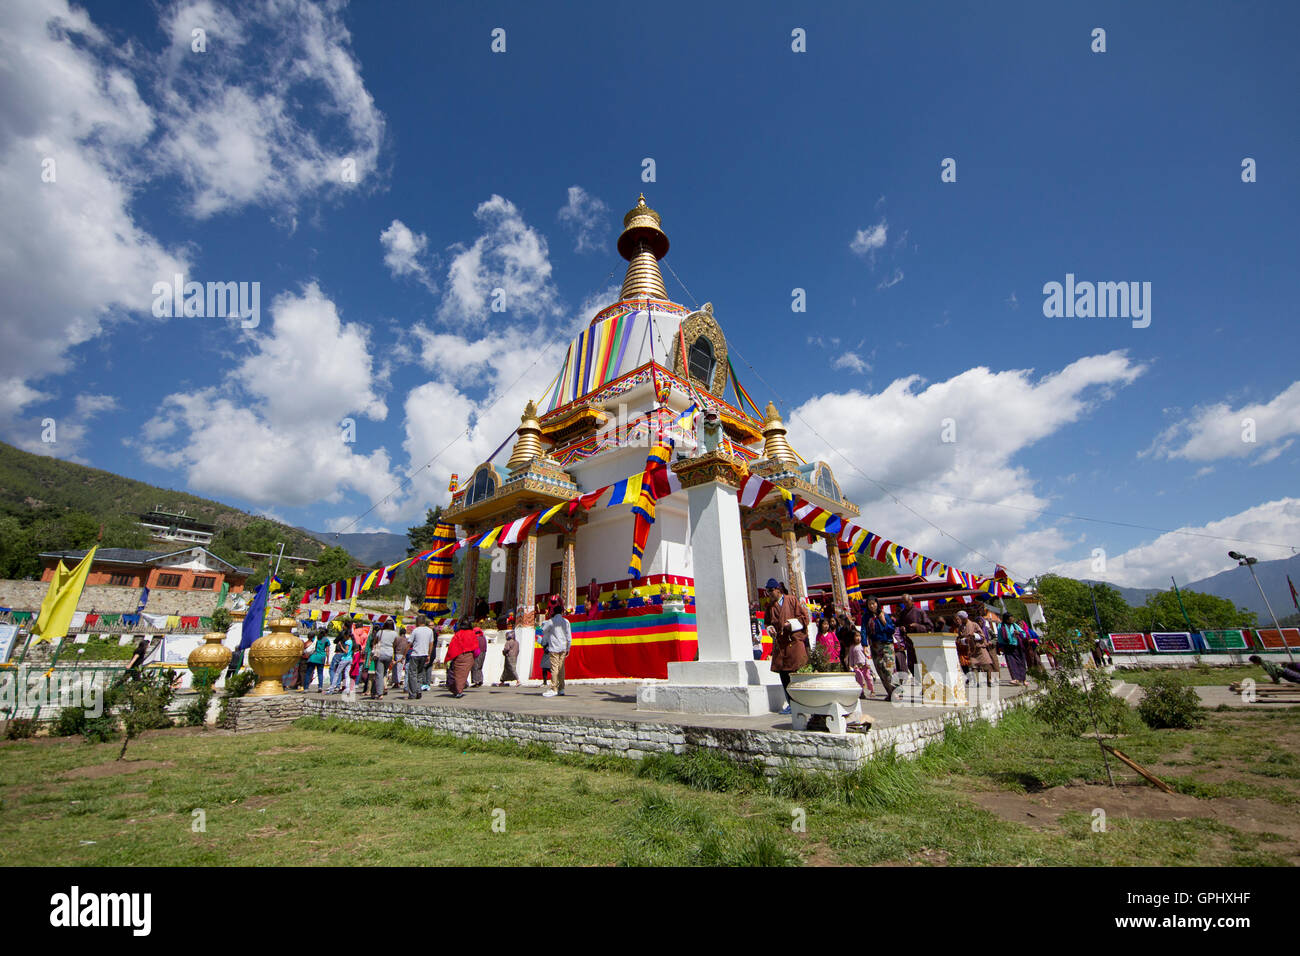 Festival at national memorial chorten in Thimpu, Bhutan - Stock Image